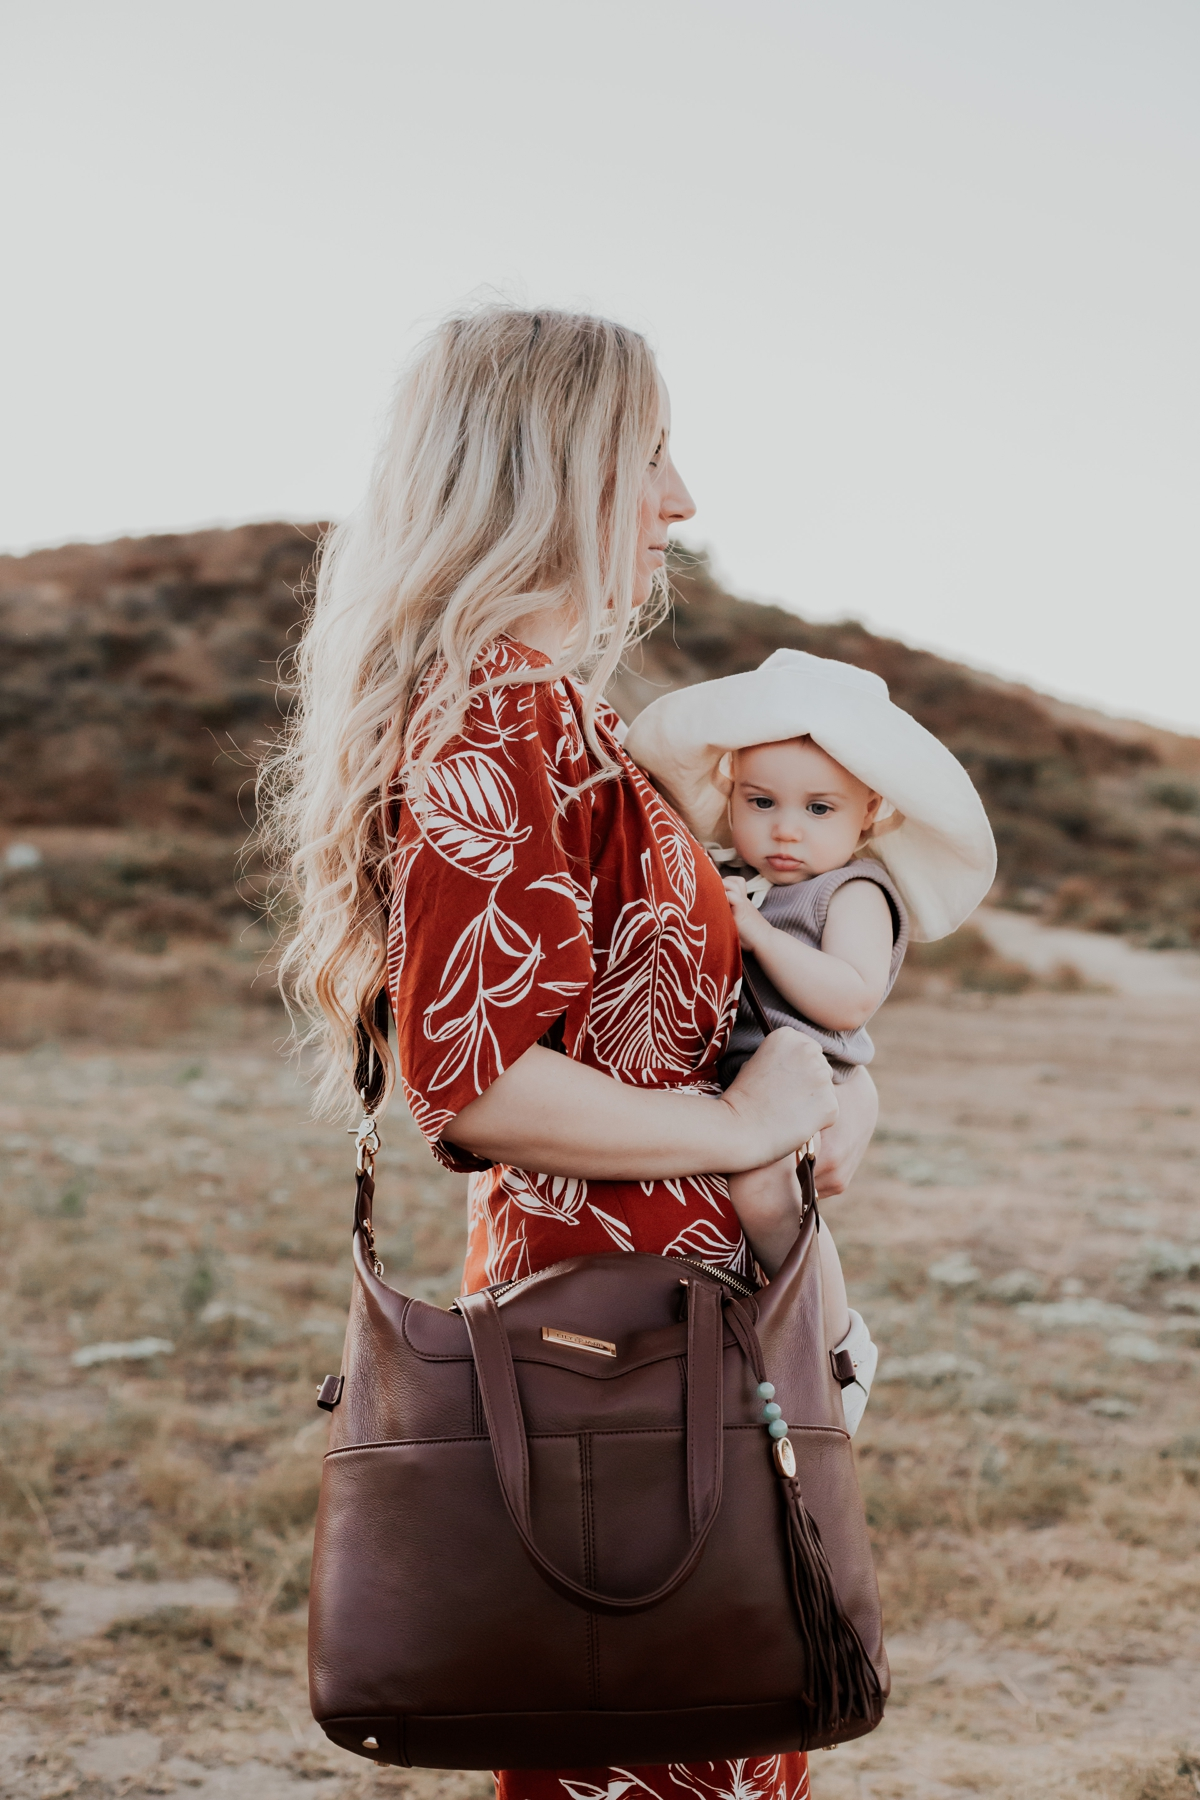 Kandis_Marino_Photography_Lifestyle_Lily_Jade_Diaper_Bag_Influencer_Abassador_Baby_Mom_Blogger_Mommy_Blog_Newborn_Pregnancy_0138.jpg